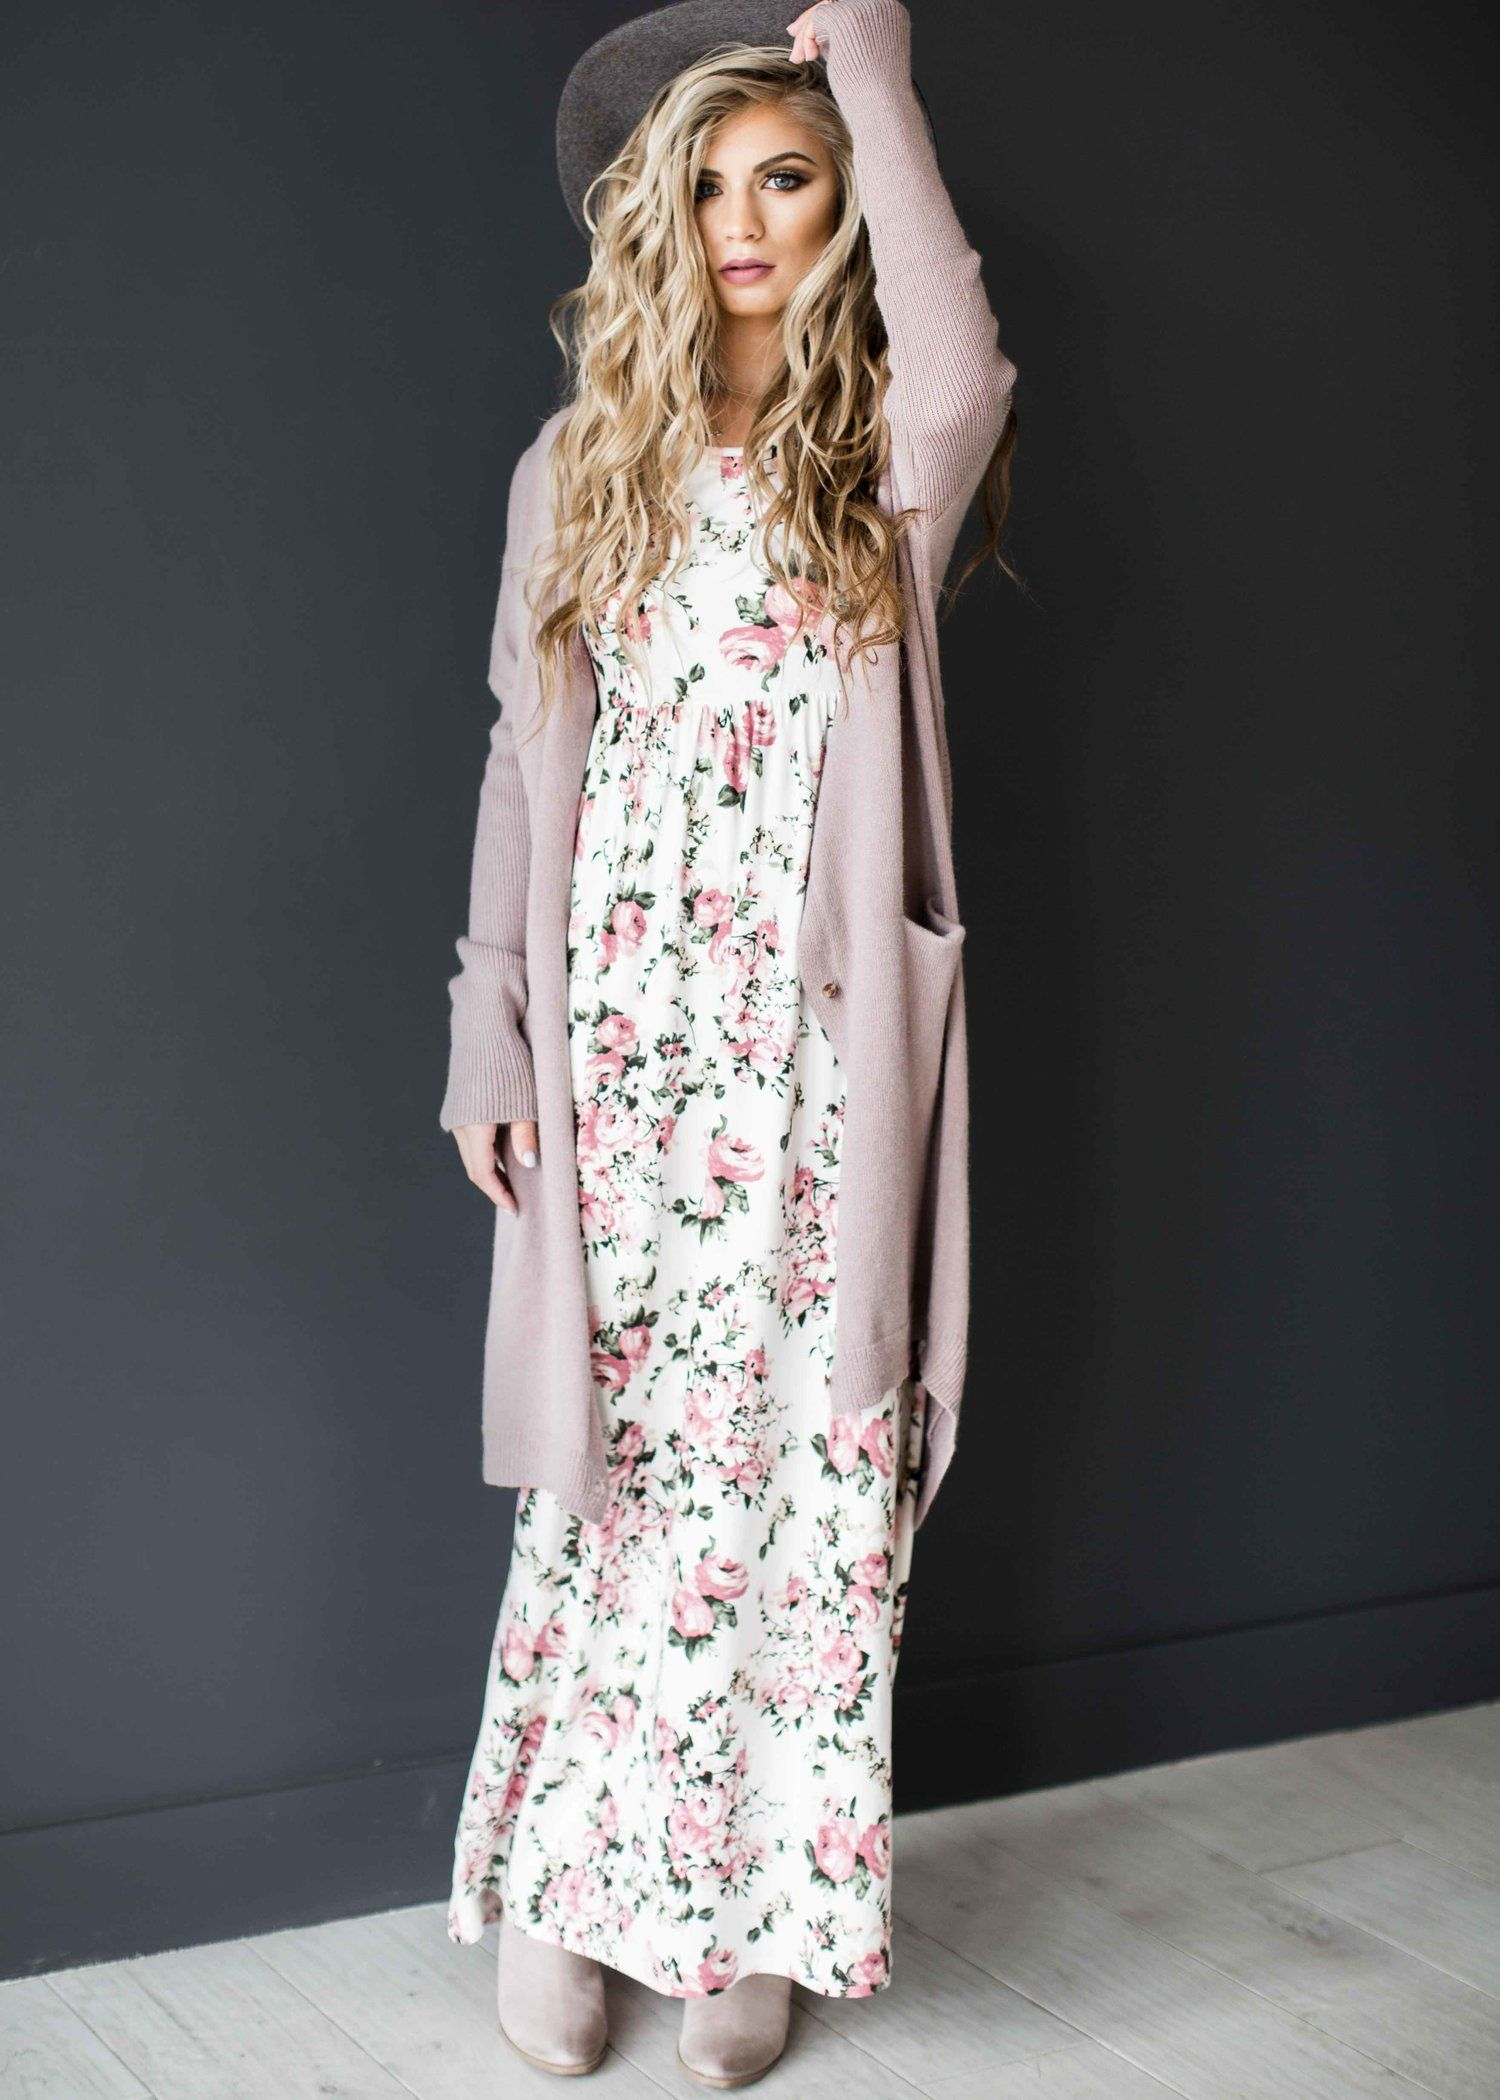 floral dress, blonde, jessakae, easter dress, spring dress, midi ...